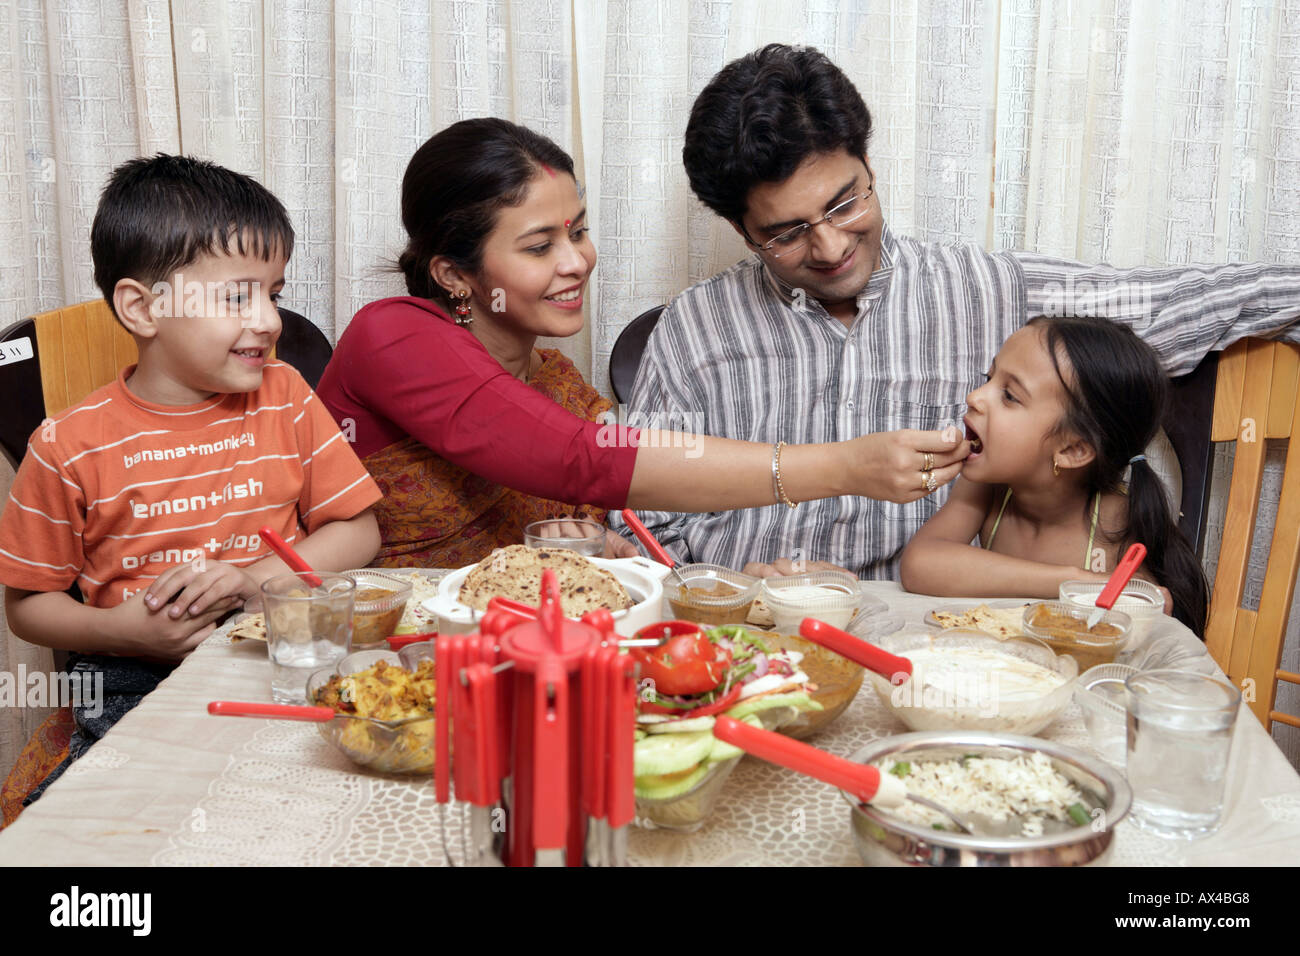 Family eating food at a dining table stock photo 9557063 for Best dining tables for families